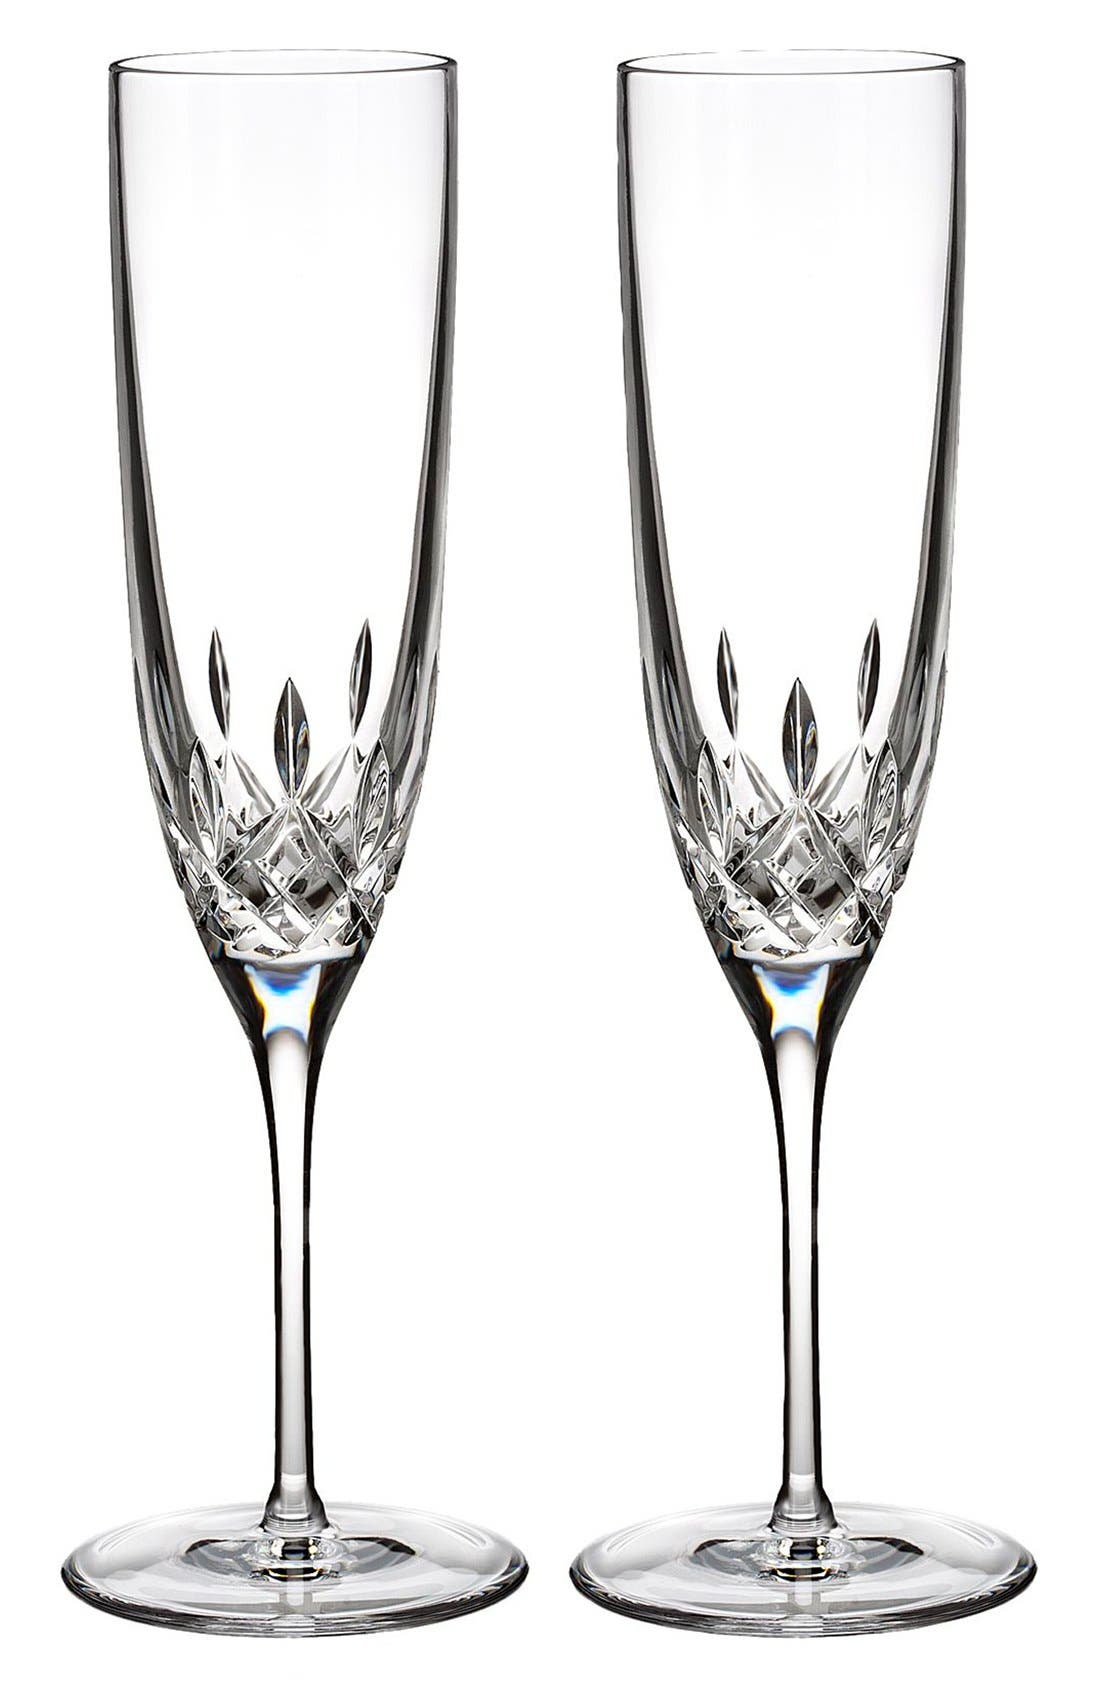 Main Image - Waterford 'Lismore Encore' Lead Crystal Flutes (Set of 2)